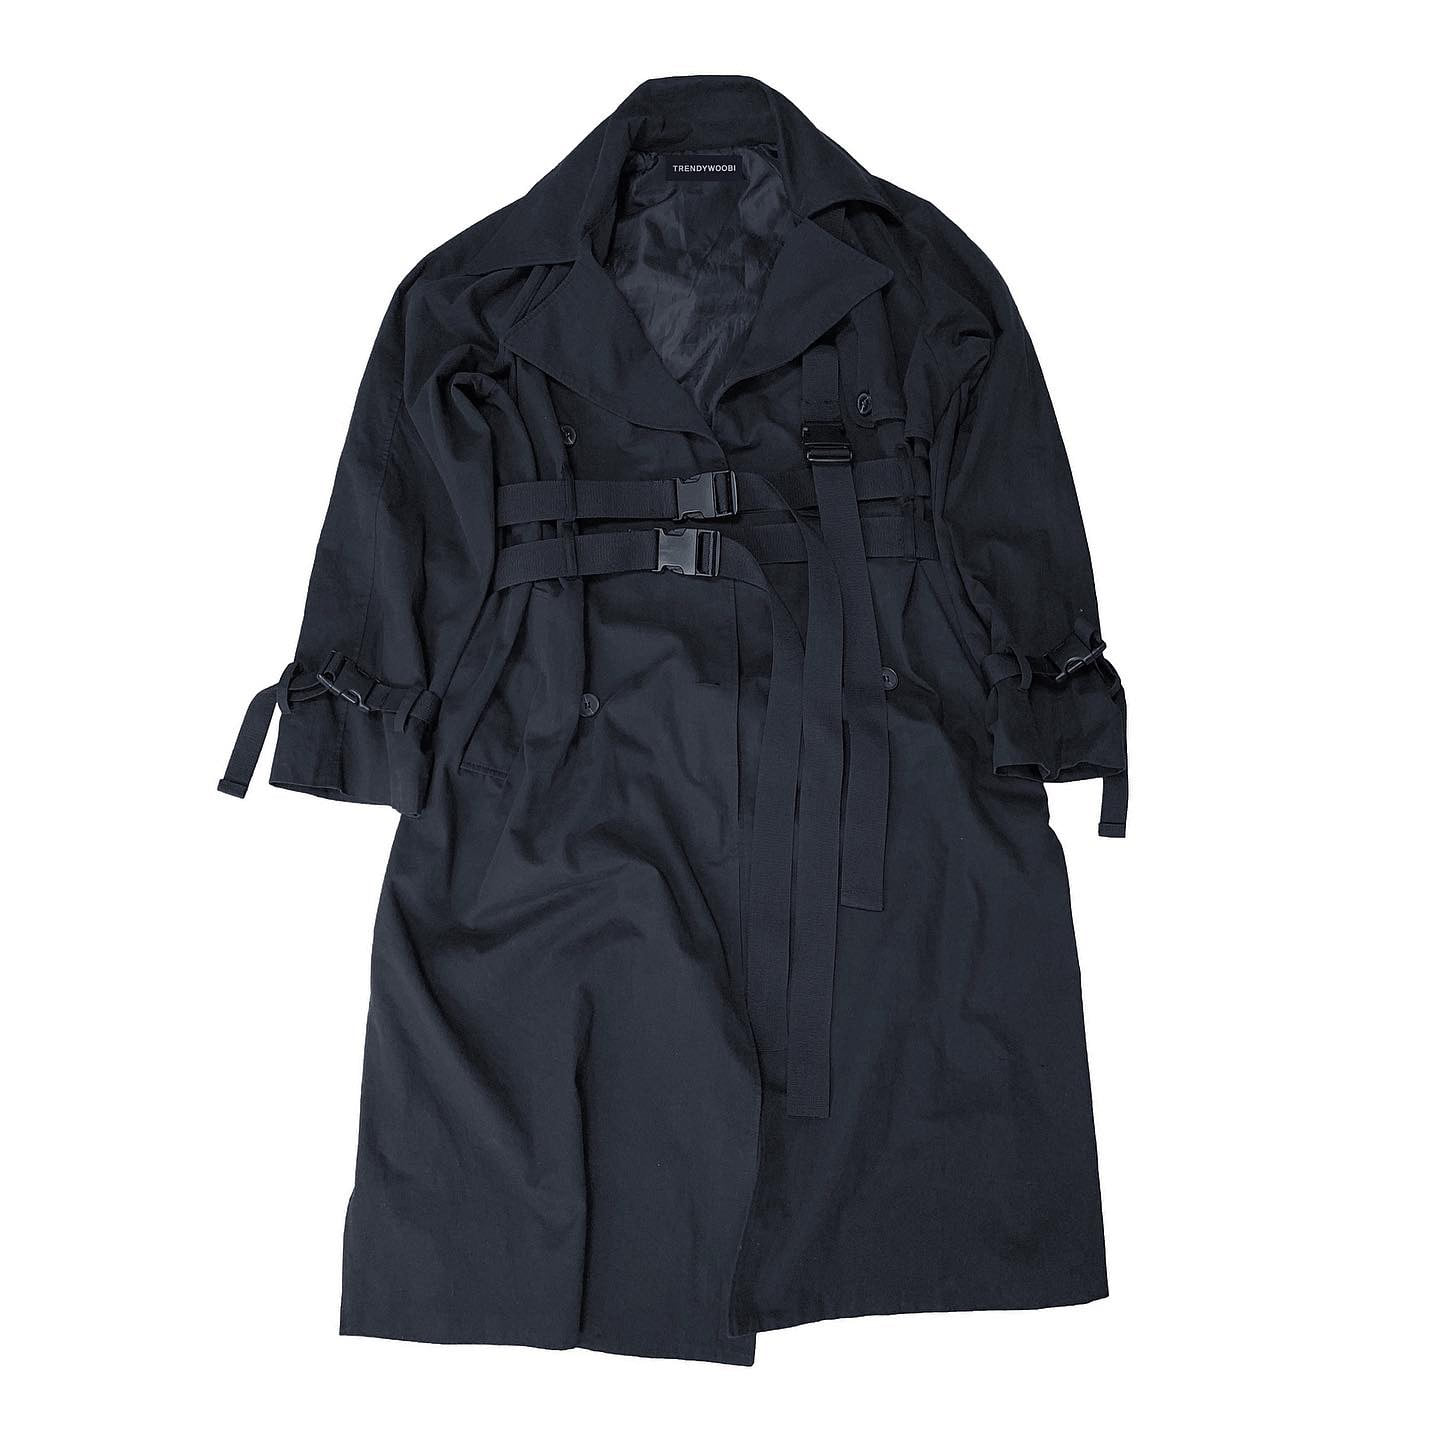 Black 3rope strap trenchcoat(소량입고)